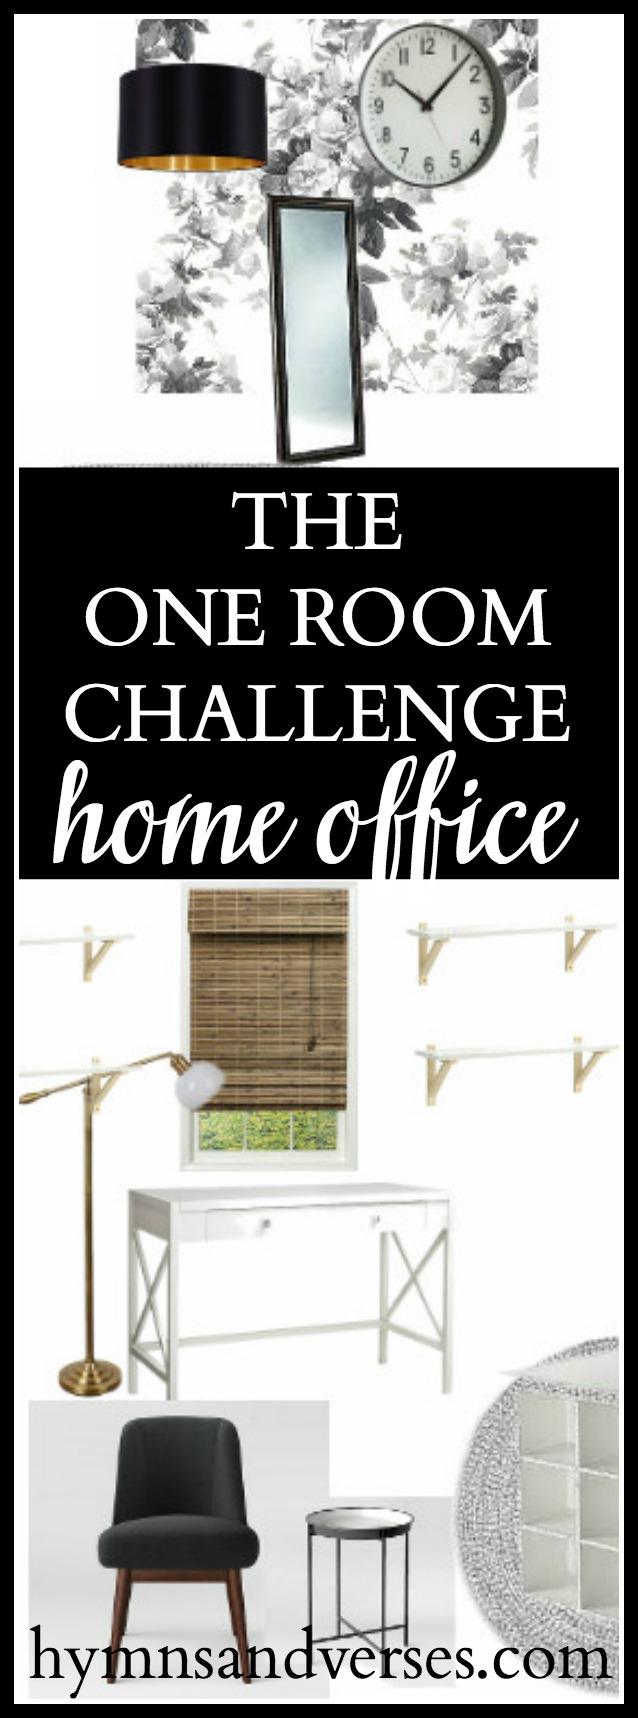 One room challenge home office hymns and verses for Bedroom hymns lyrics